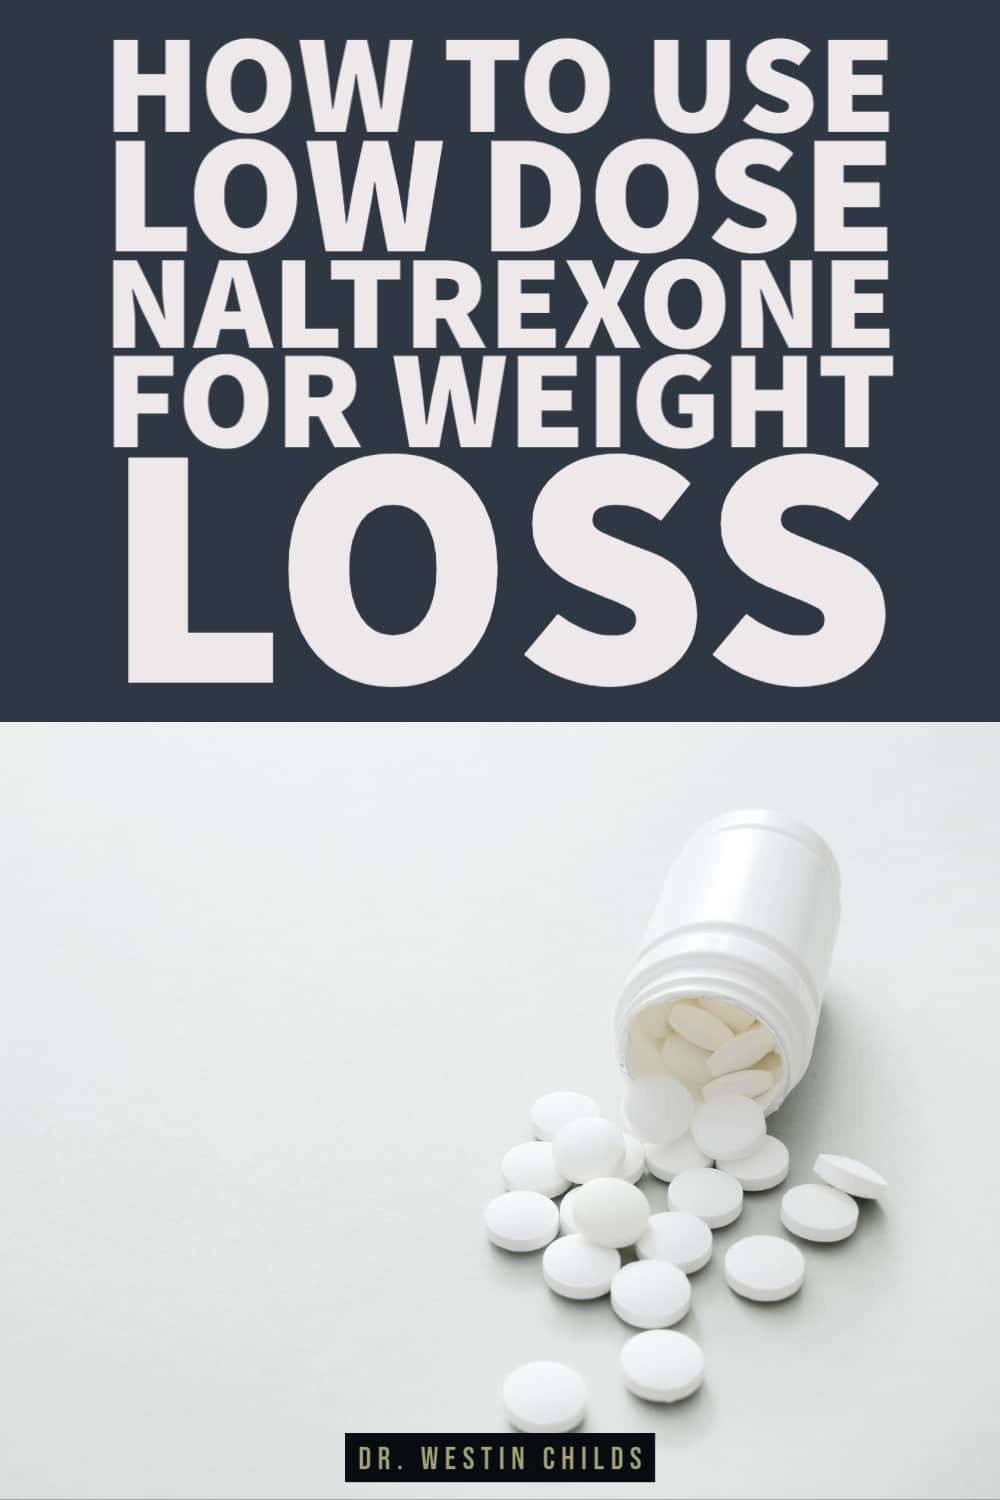 how to use low dose naltrexone for weight loss